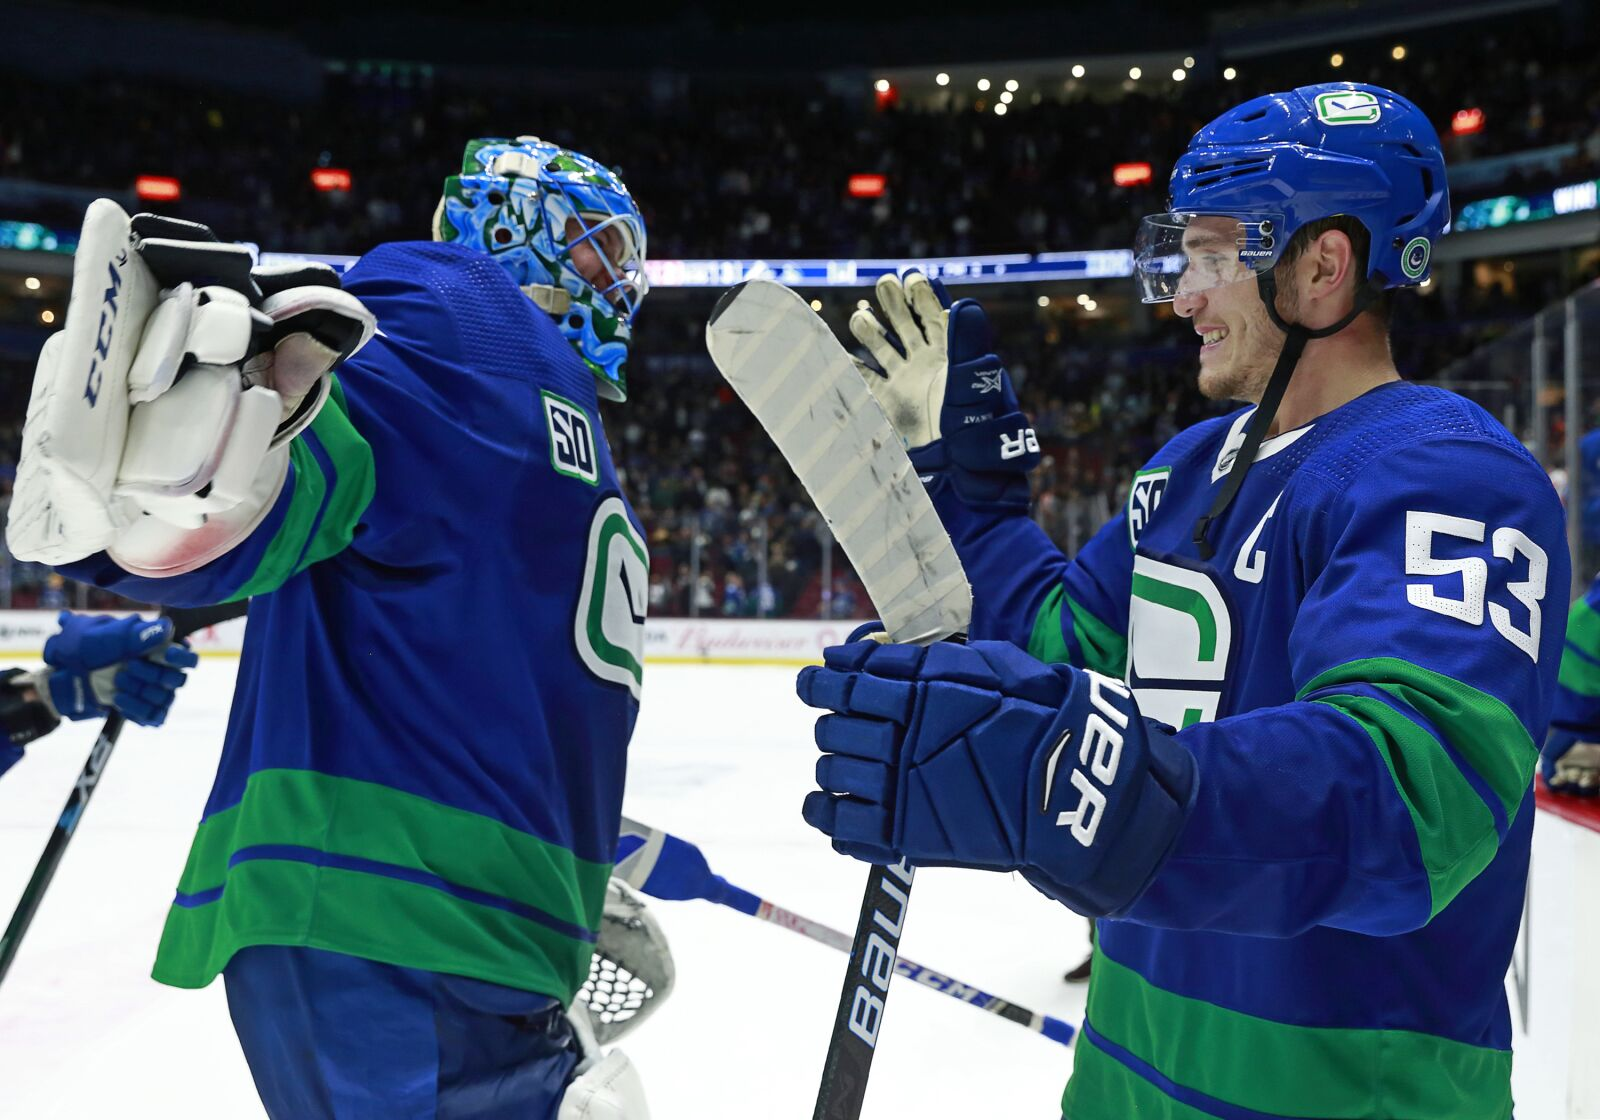 Vancouver Canucks: 3 ways they can exceed expectations